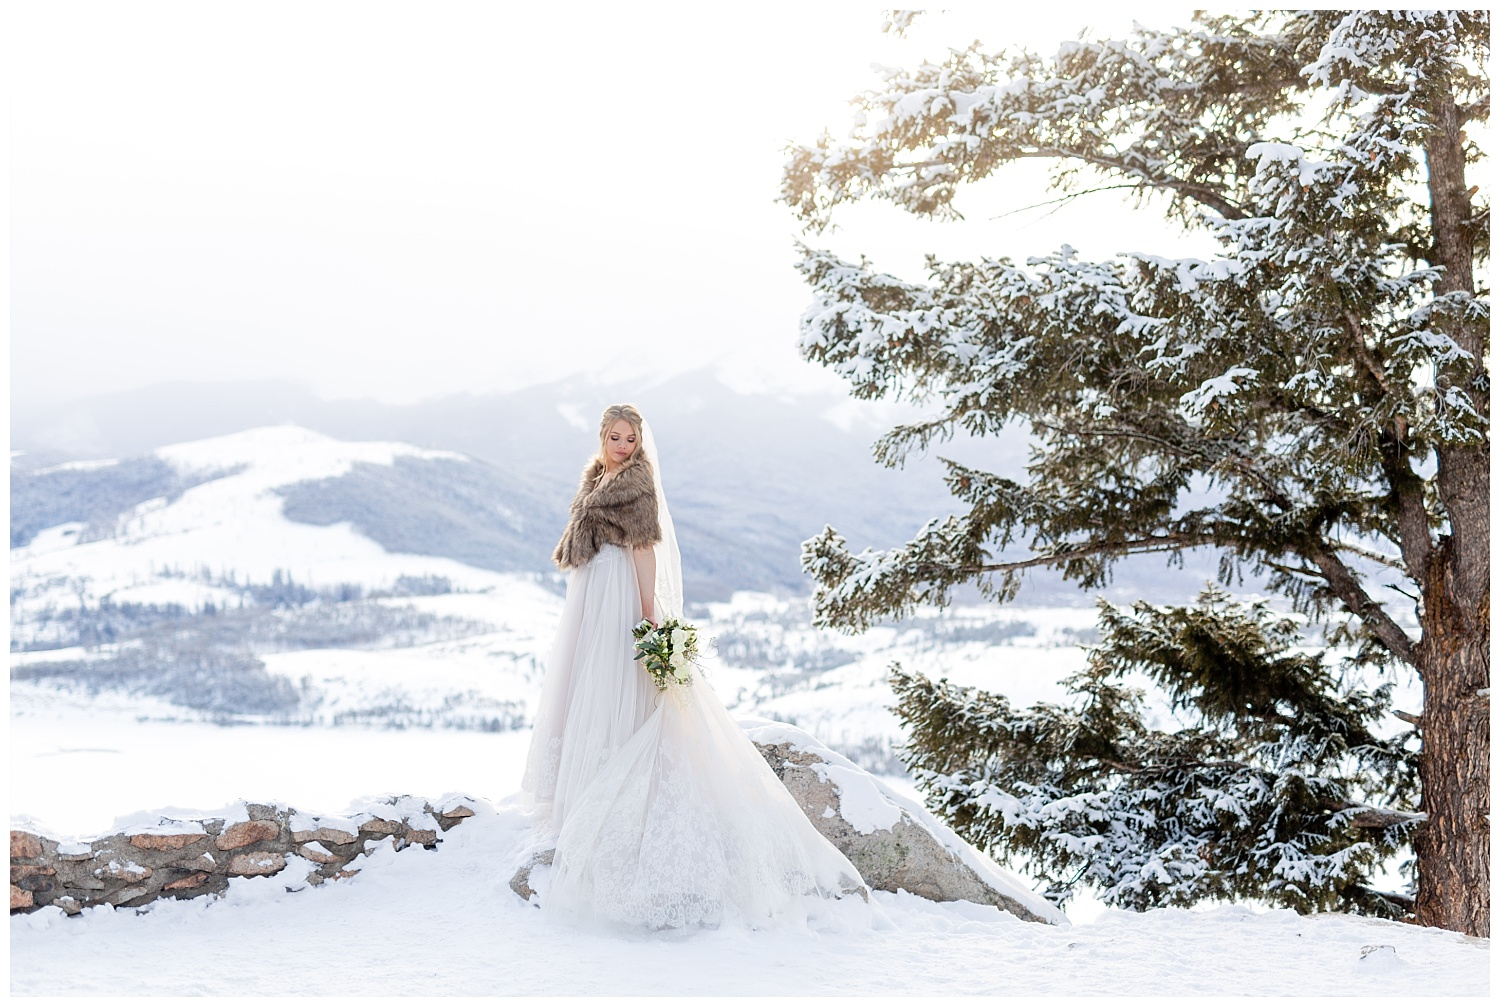 A stunning bride in the mountains of Breckenridge, Colorado